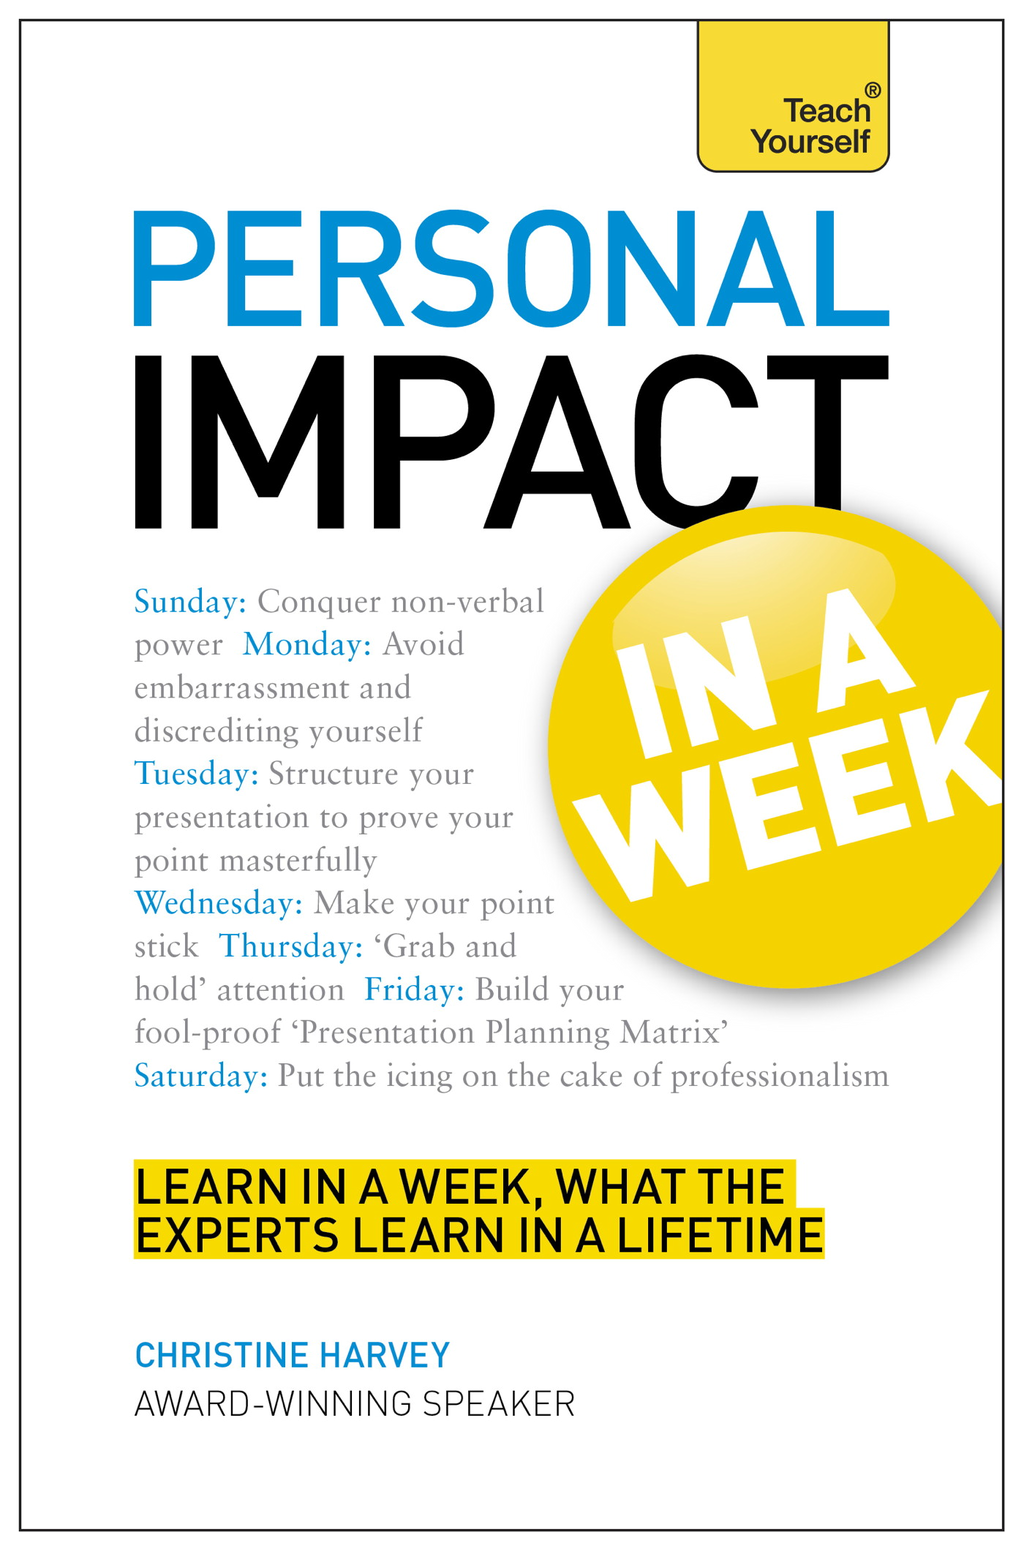 Personal Impact at Work in a Week By: Christine Harvey